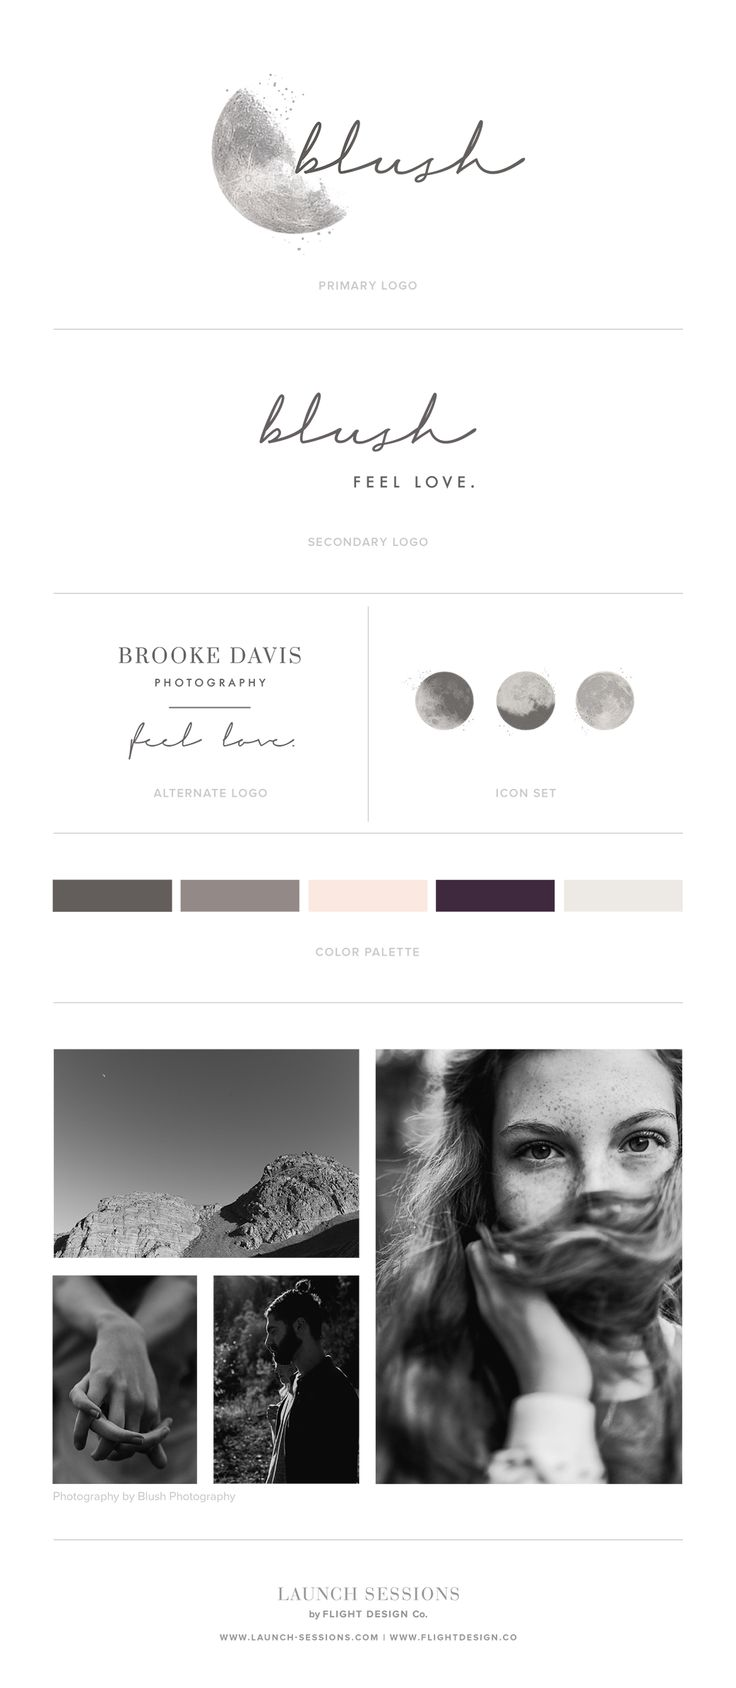 Brooke came to us wanting a brand that felt emotional, real and moody. She had been daydreaming of incorporating the moon but wanted to embrace the shadows as much as the light.   Logo, Branding & Style Guide by Launch Sessions of Flight Design Co.